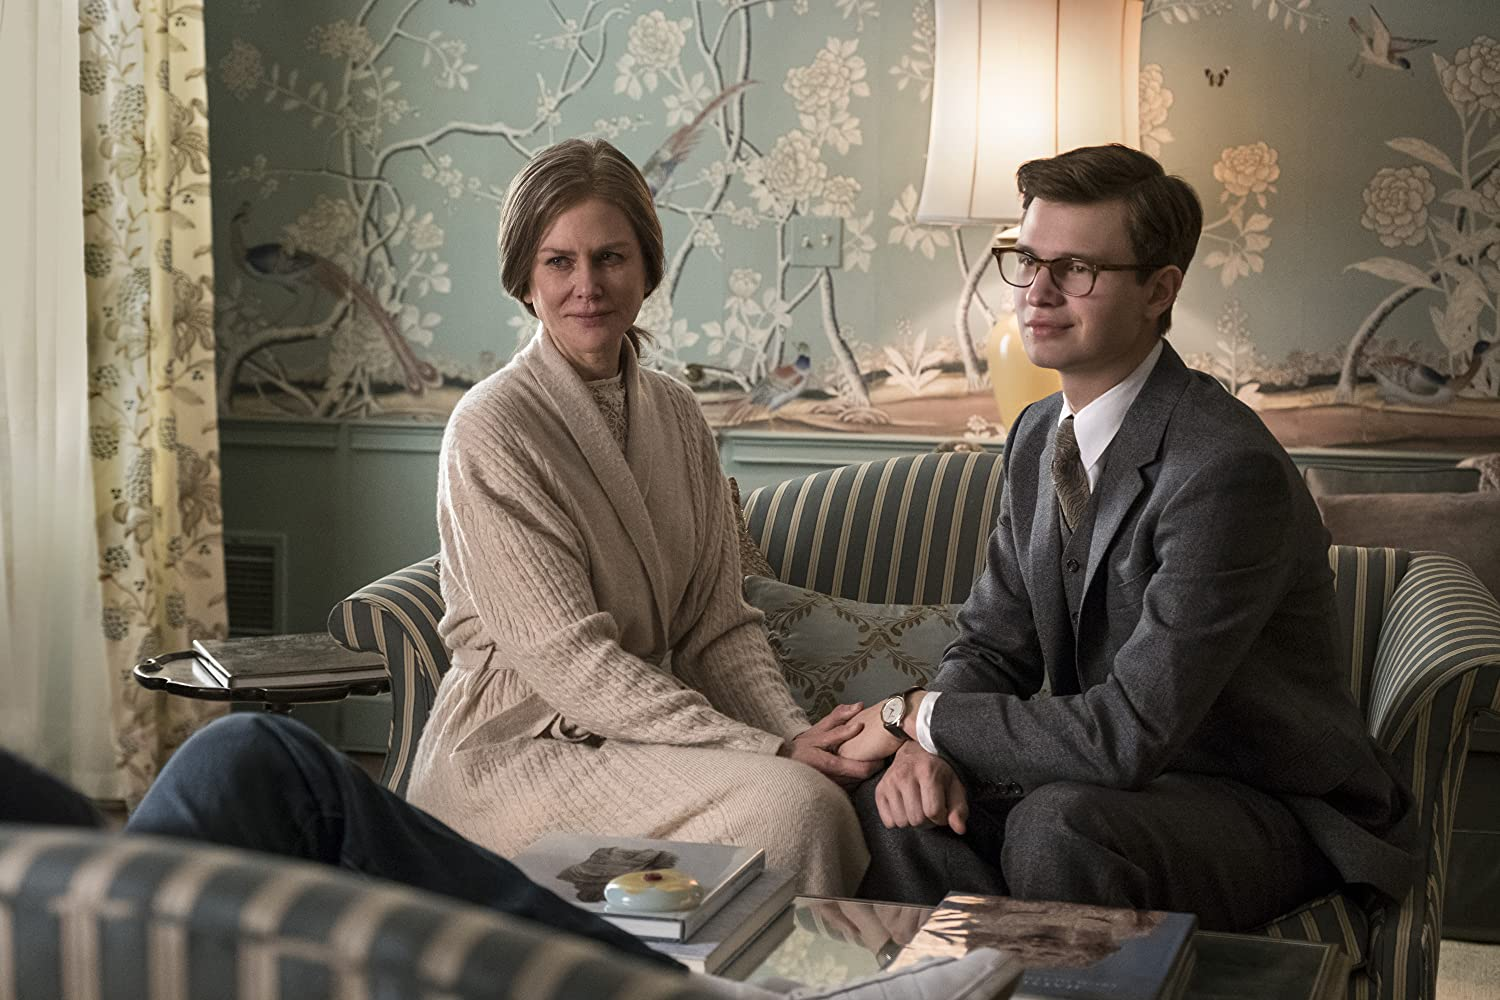 Nicole Kidman and Ansel Elgort in The Goldfinch (2019)